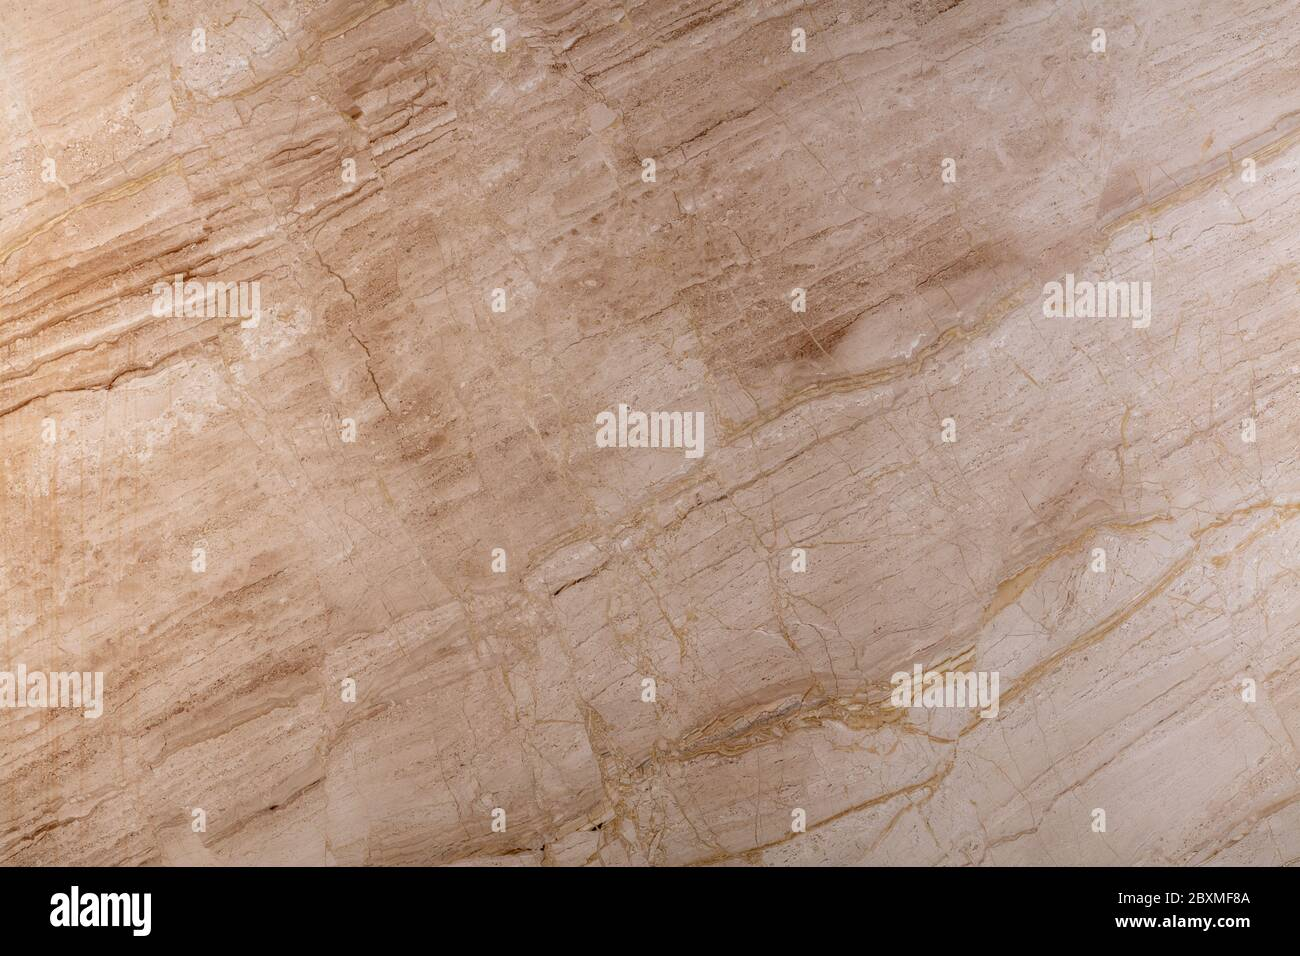 Natural Marble Texture In Beautiful Beige Tone For Design Stock Photo Alamy